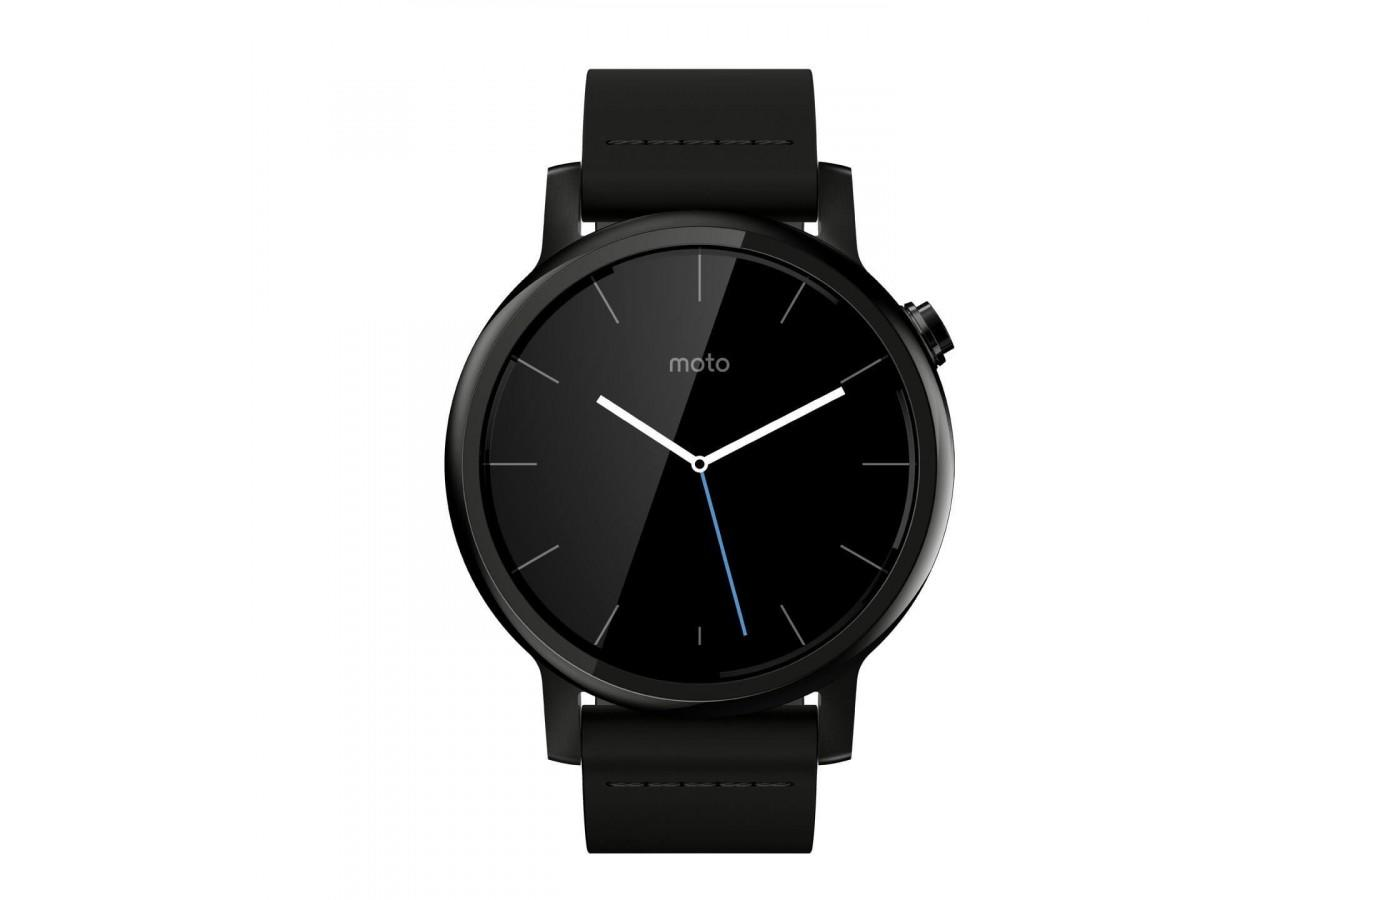 the Motorola Moto 360 (2nd Gen) has a large display